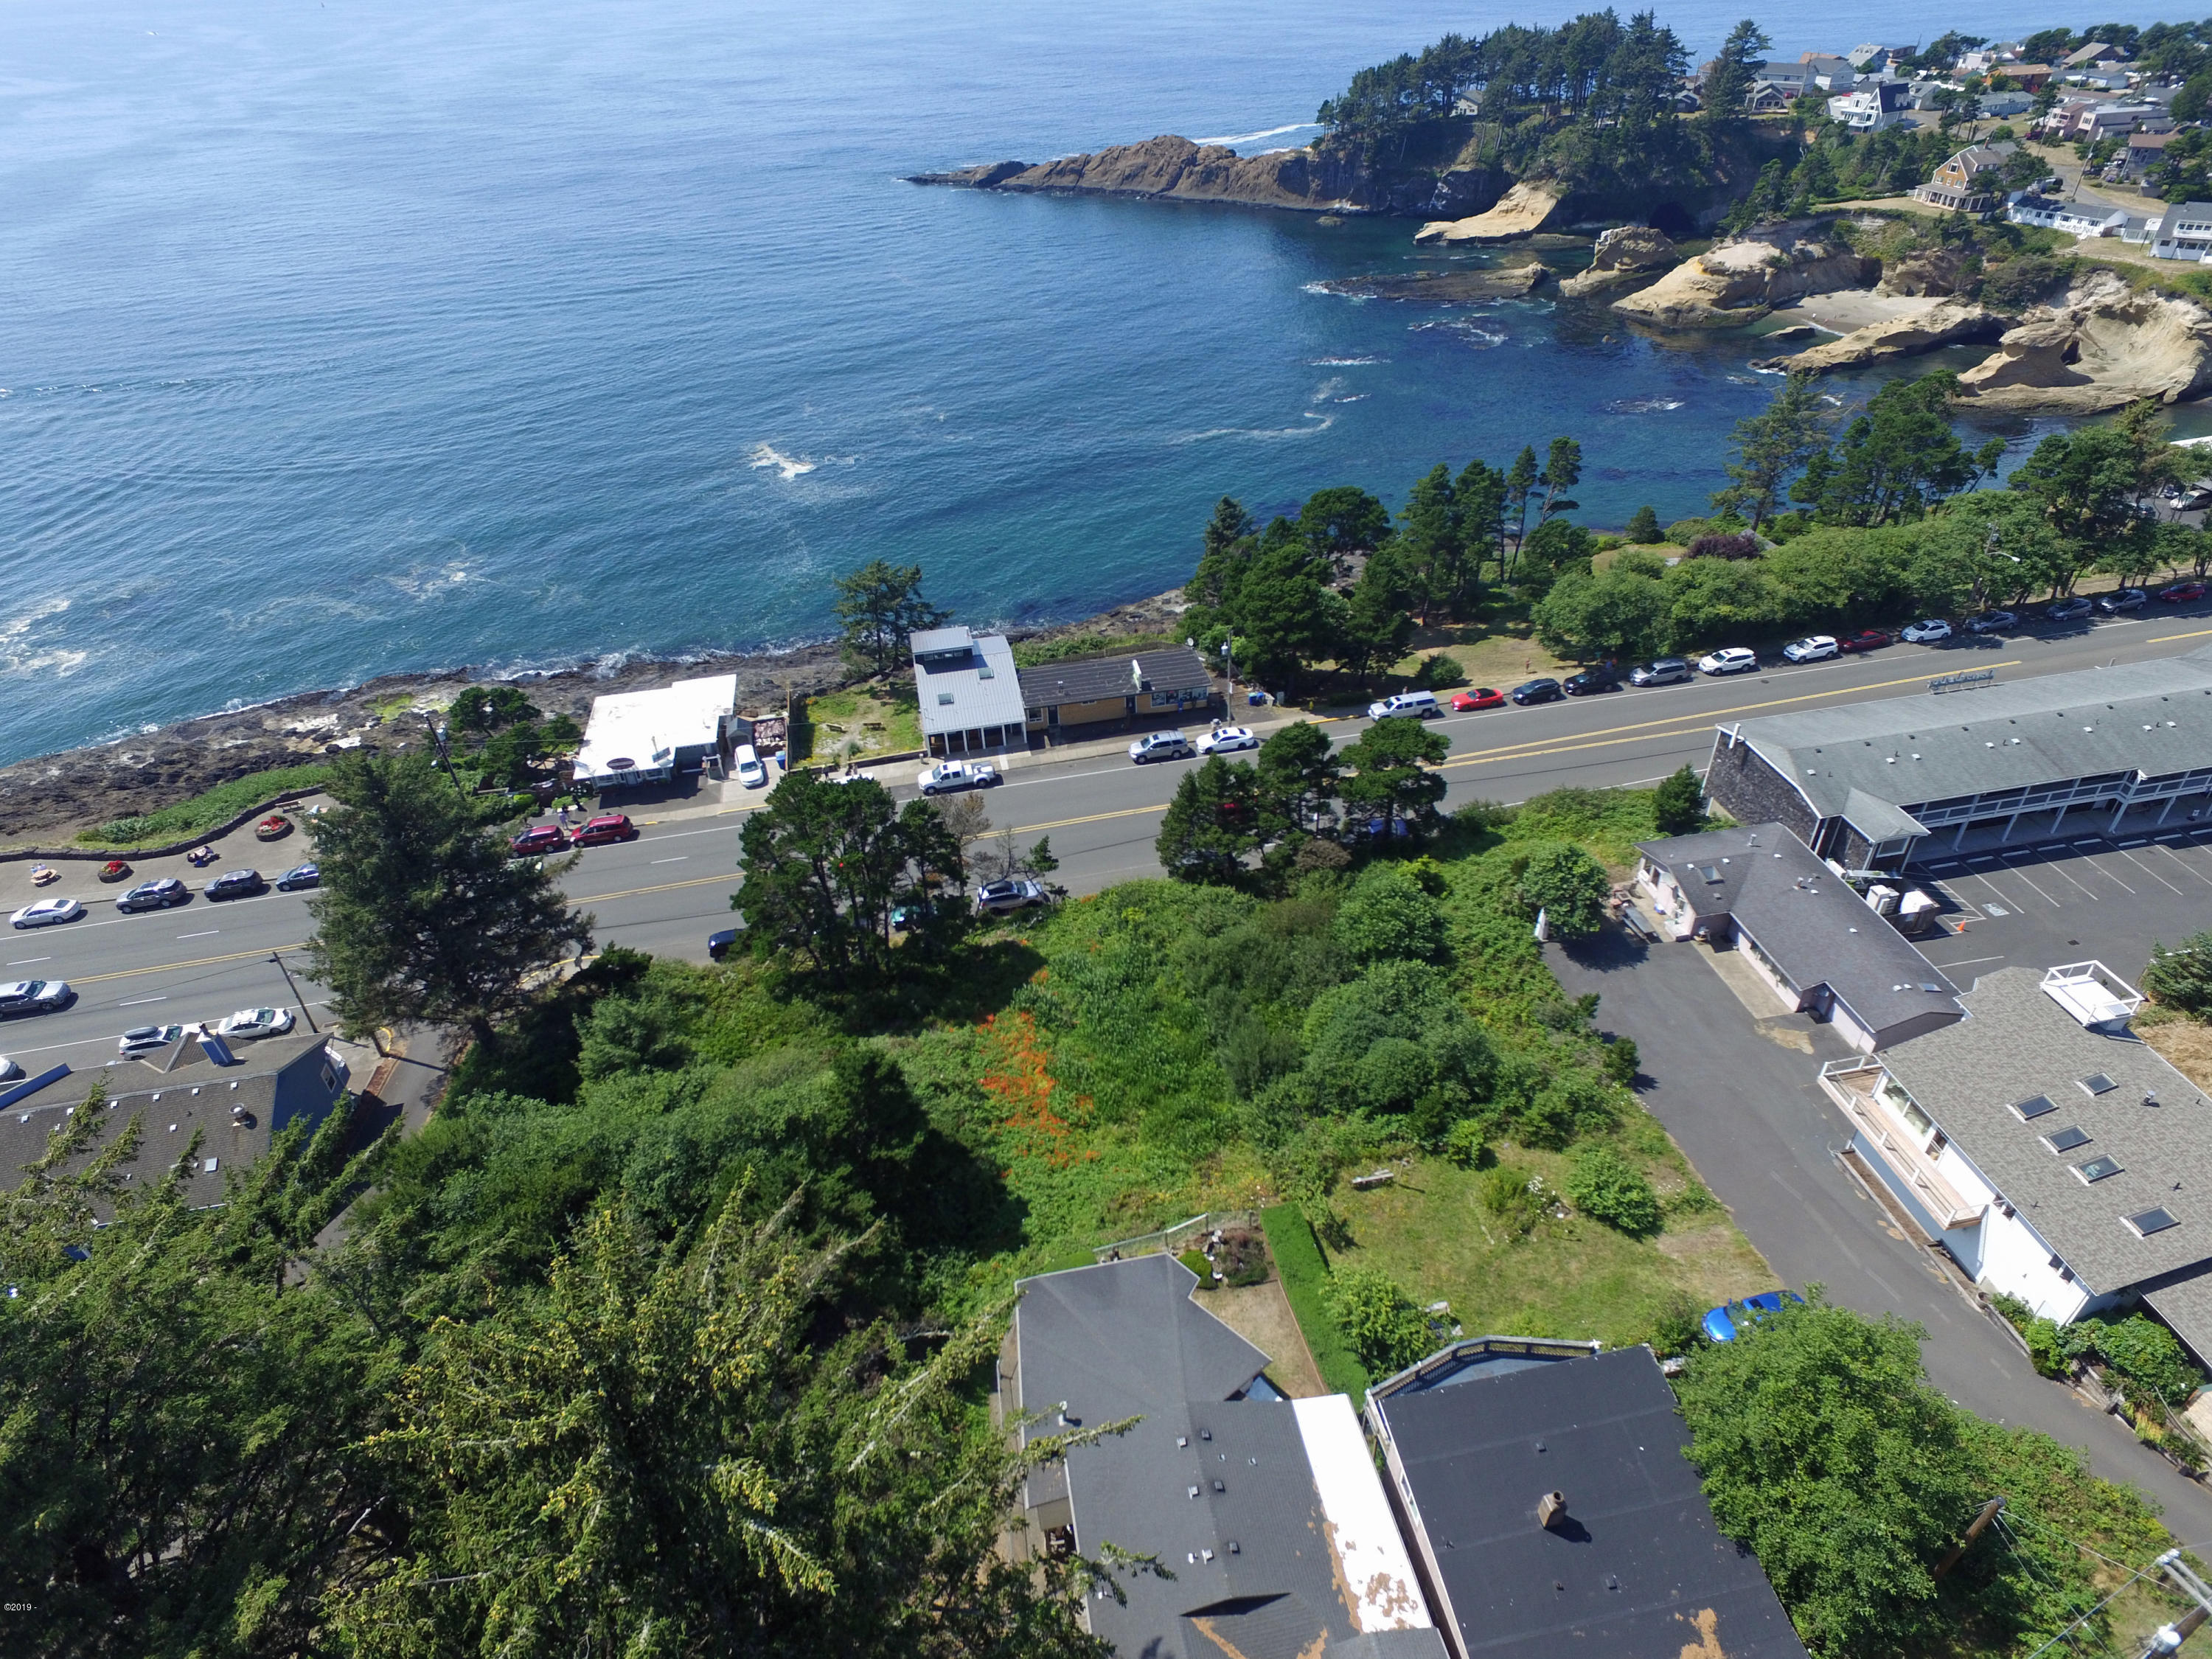 LOT 3200 Williams, Depoe Bay, OR 97231 - 3